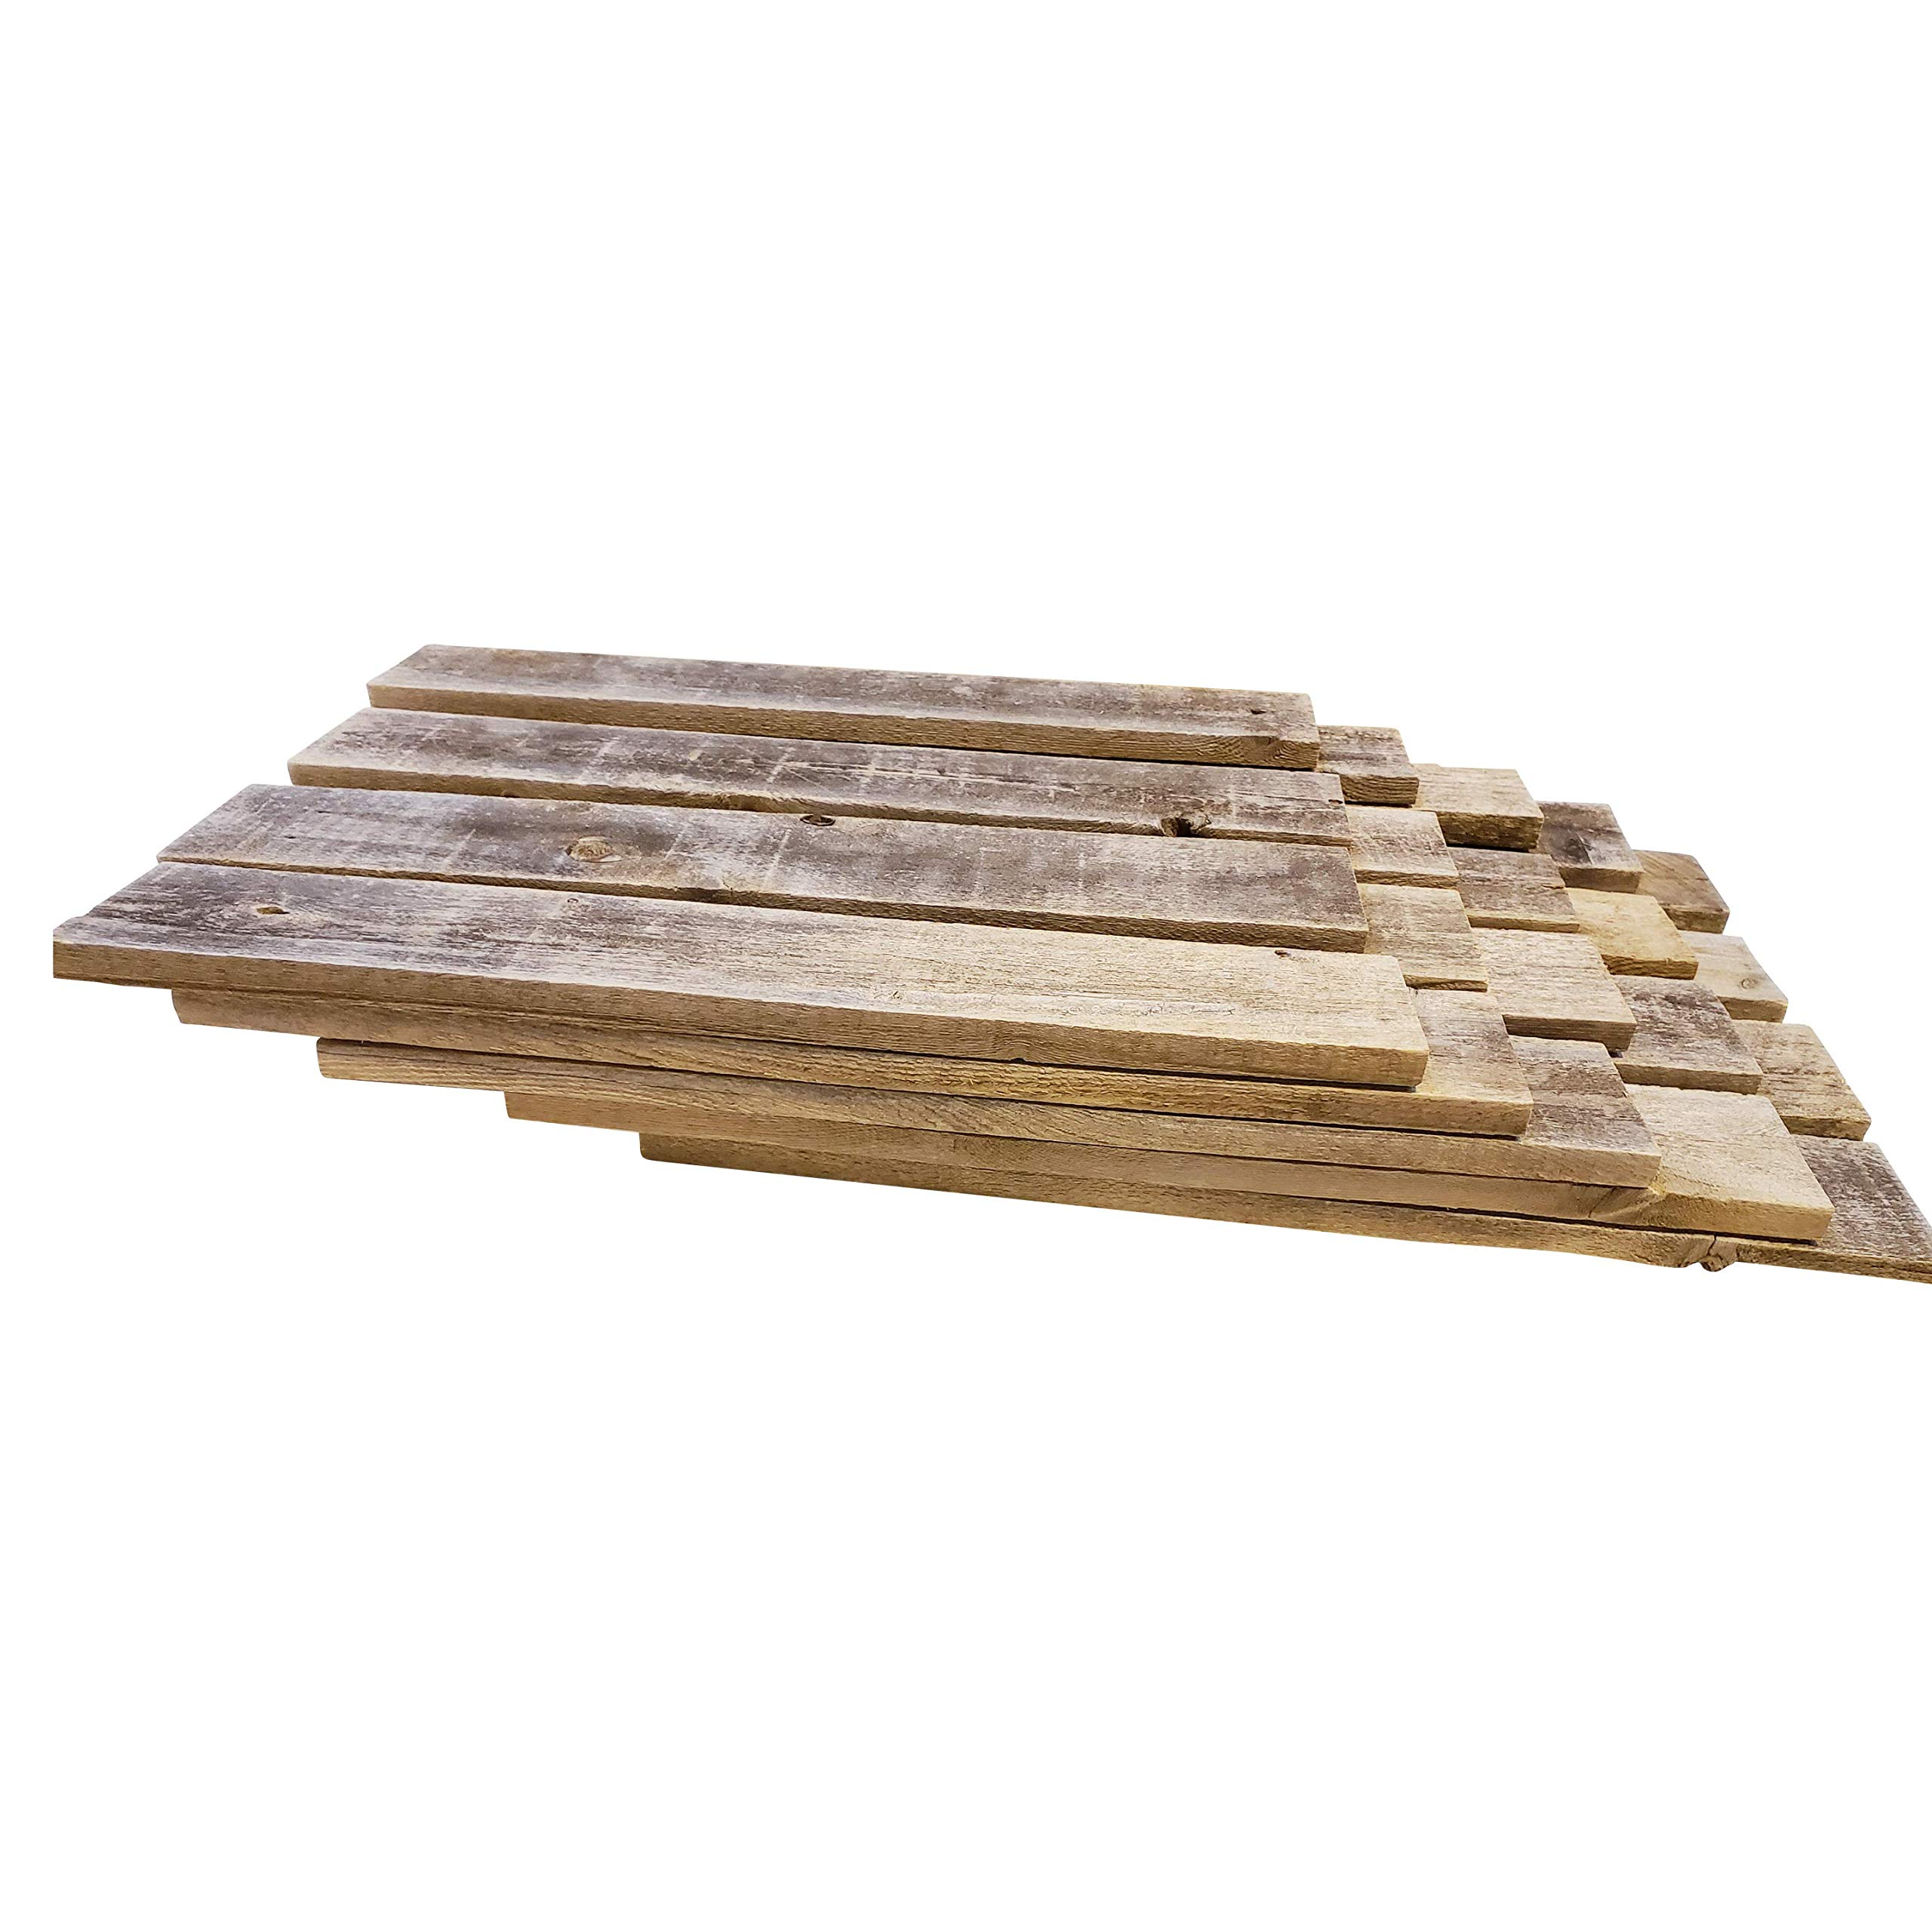 Rockin' Wood Rustic Weathered Reclaimed Wood Planks for DIY Crafts, Projects and Decor (20 Planks - 24'' Long, Rustic Grey)